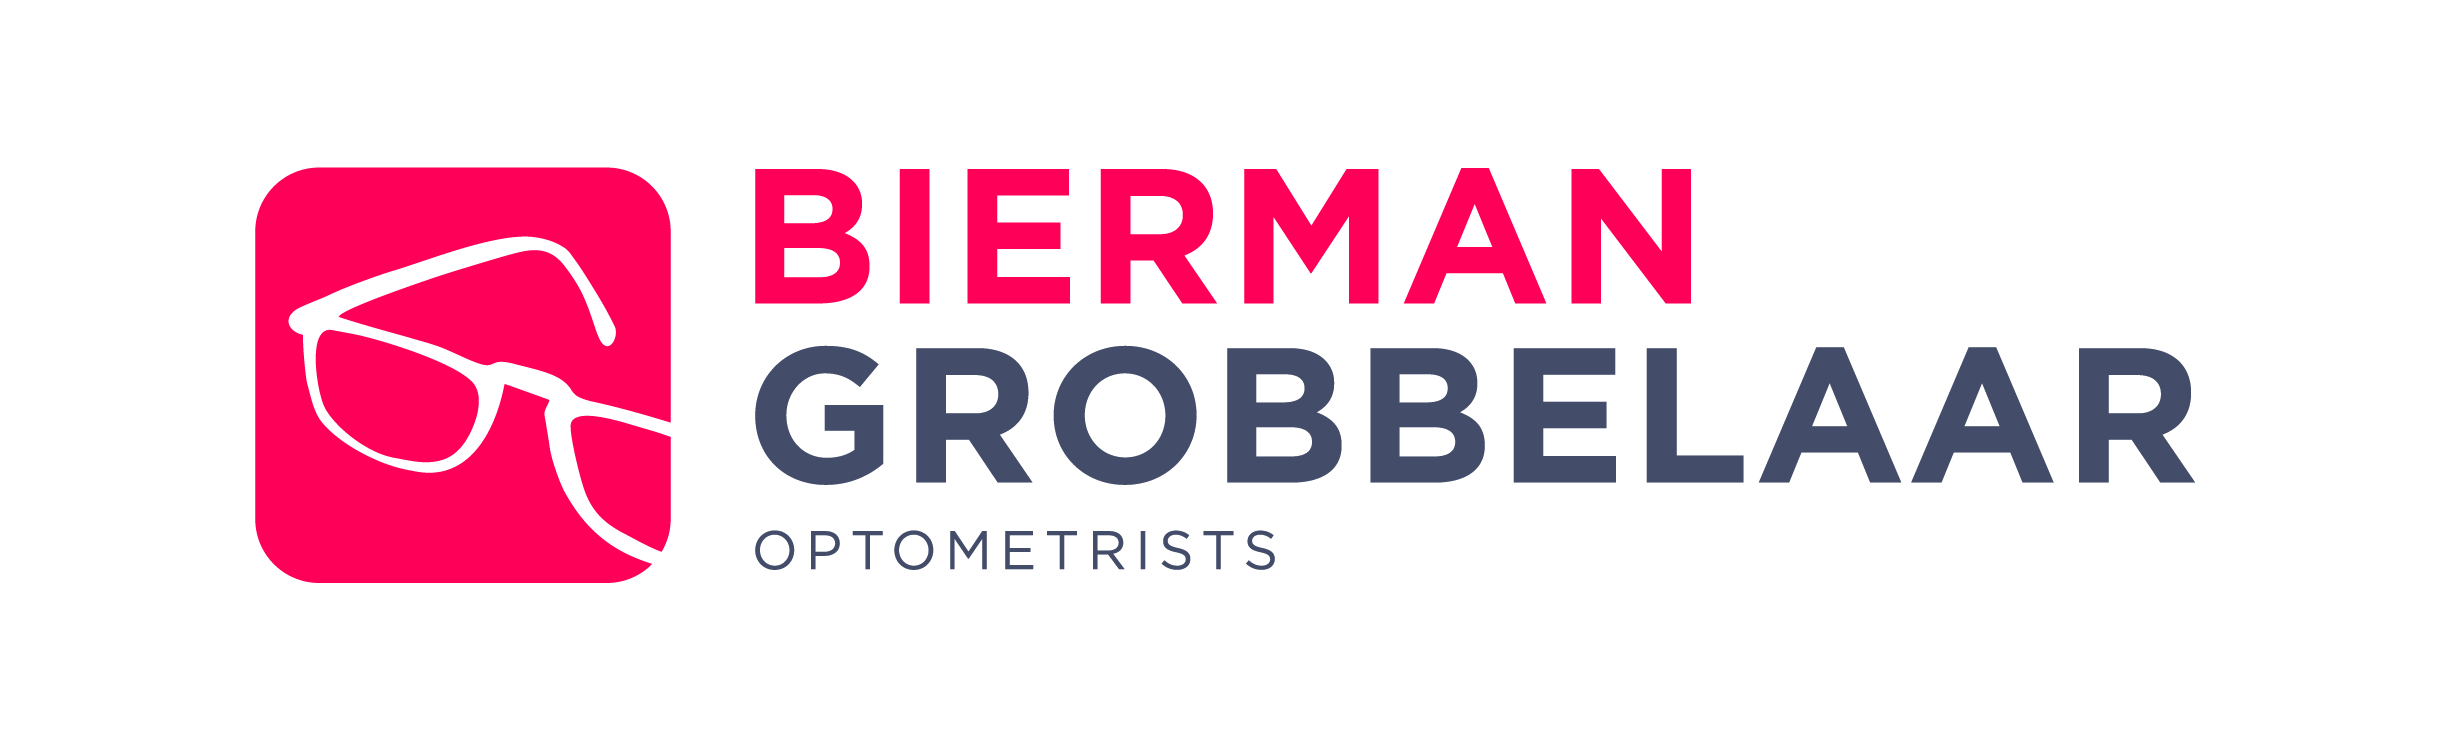 BIERMAN GROBBELAAR OPTOMETRISTS